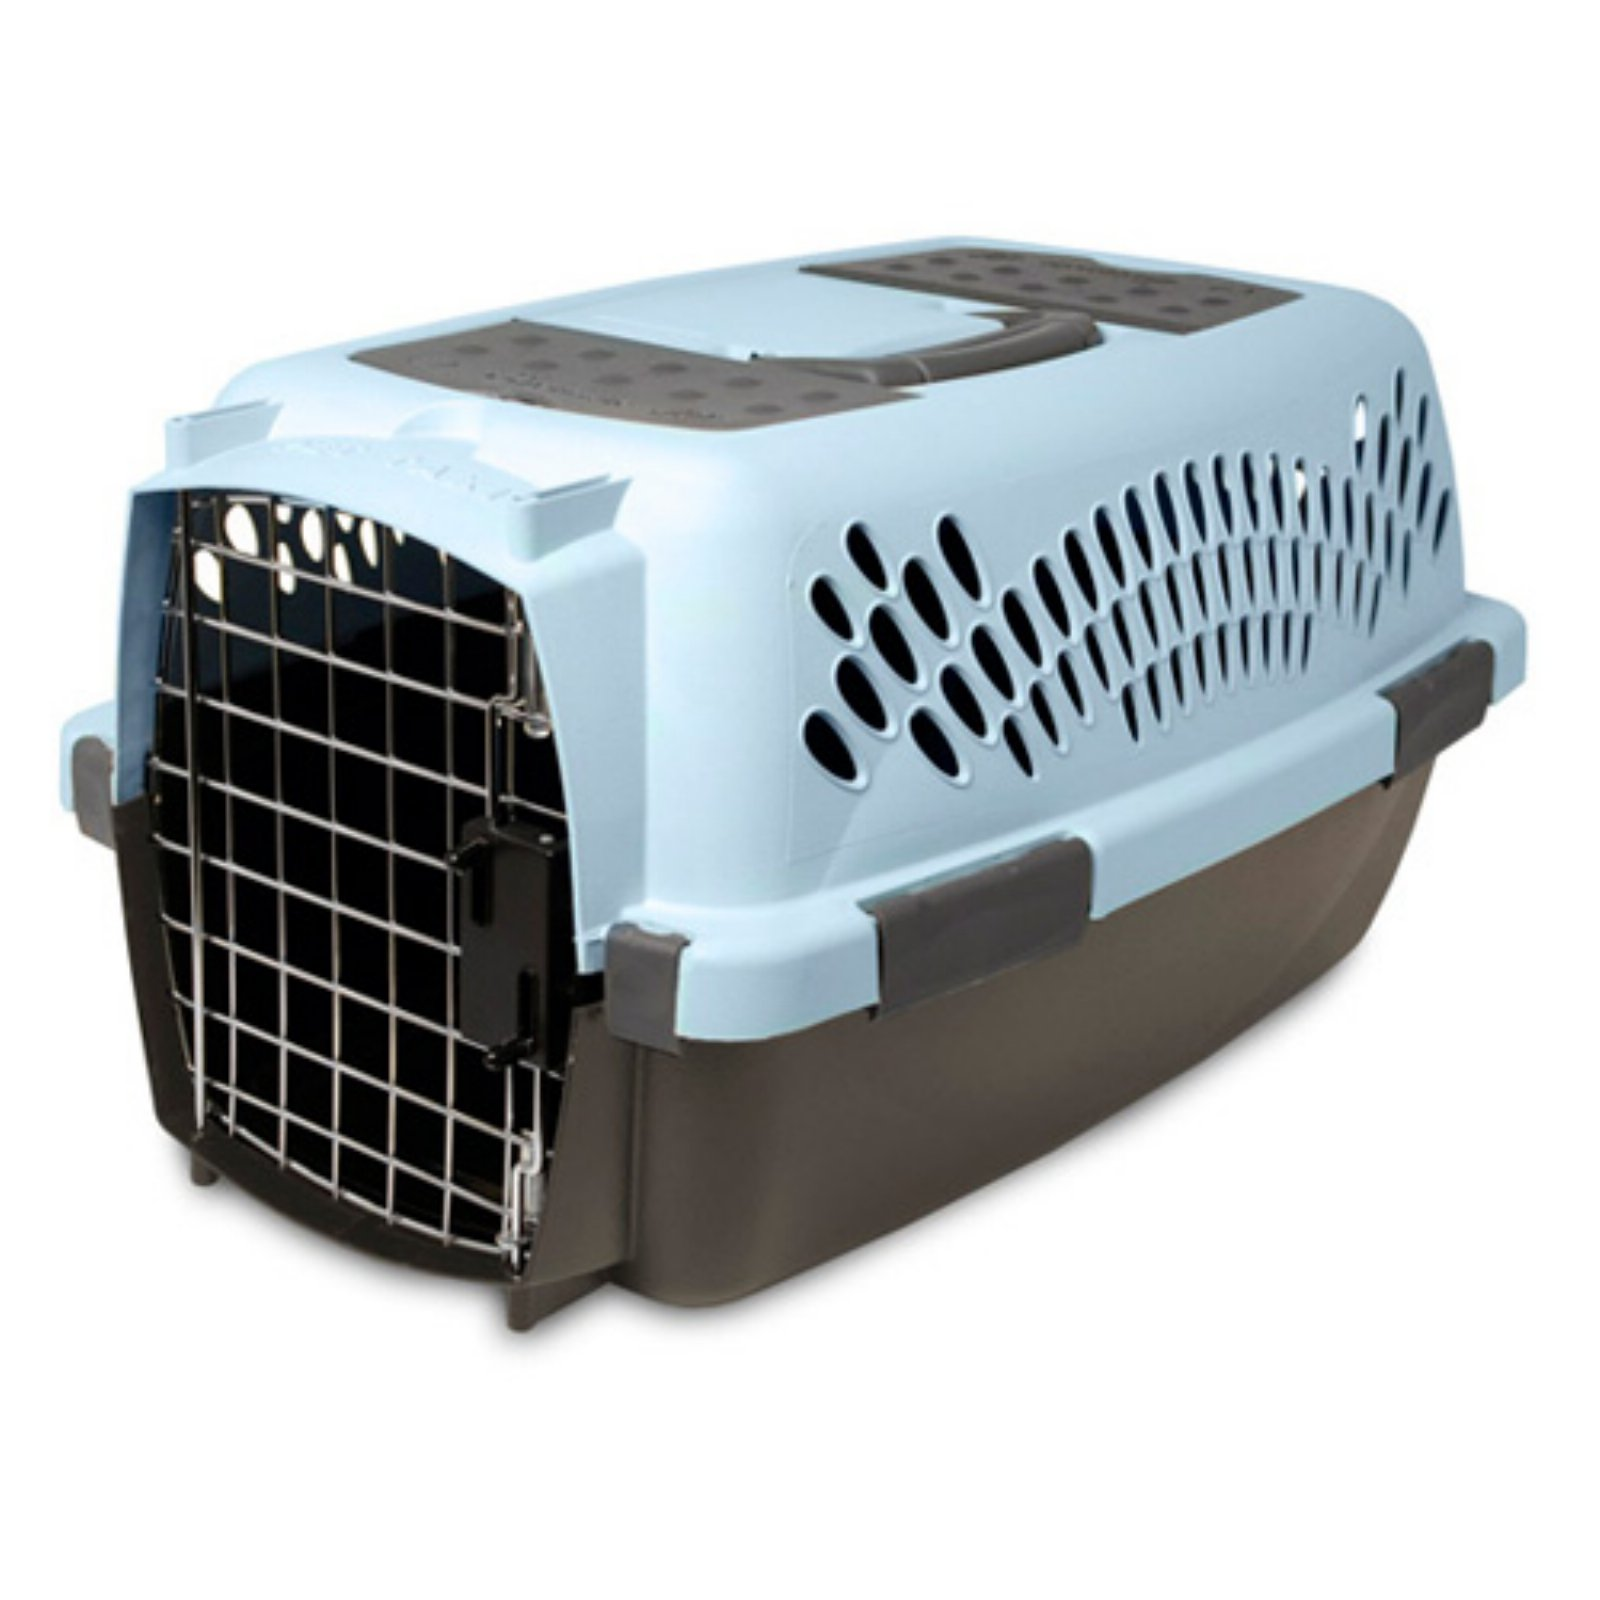 blue dog crate midwest  blue single door icrate dog crate  - aspen pet porter fashion dog crate walmartcom